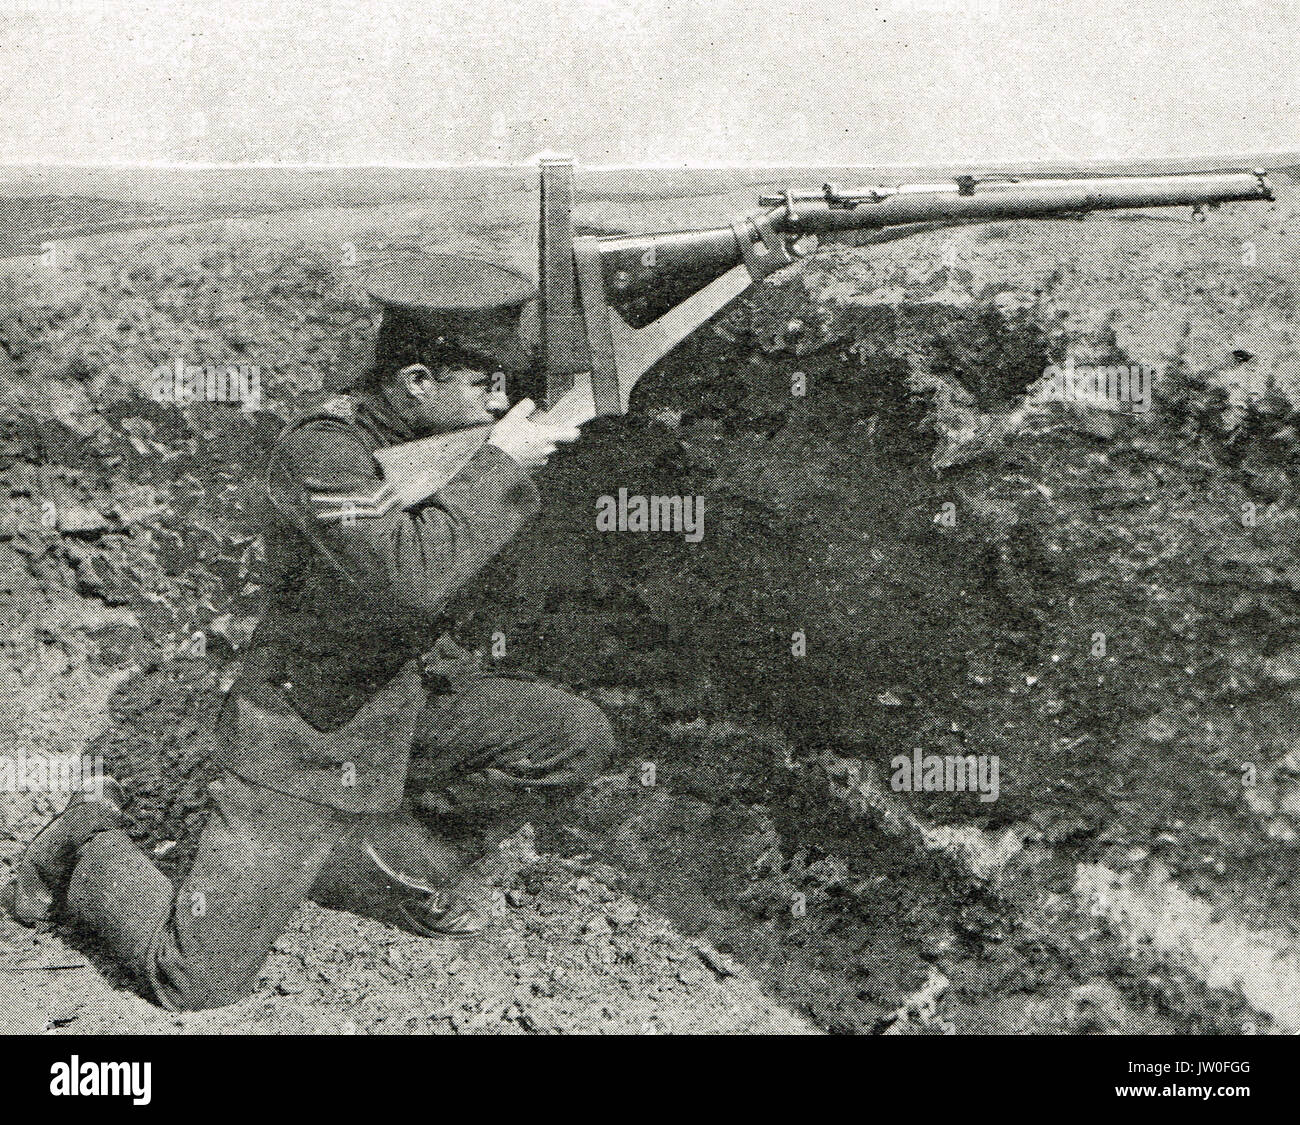 Defensive trench war, a periscope rifle, WW1 - Stock Image